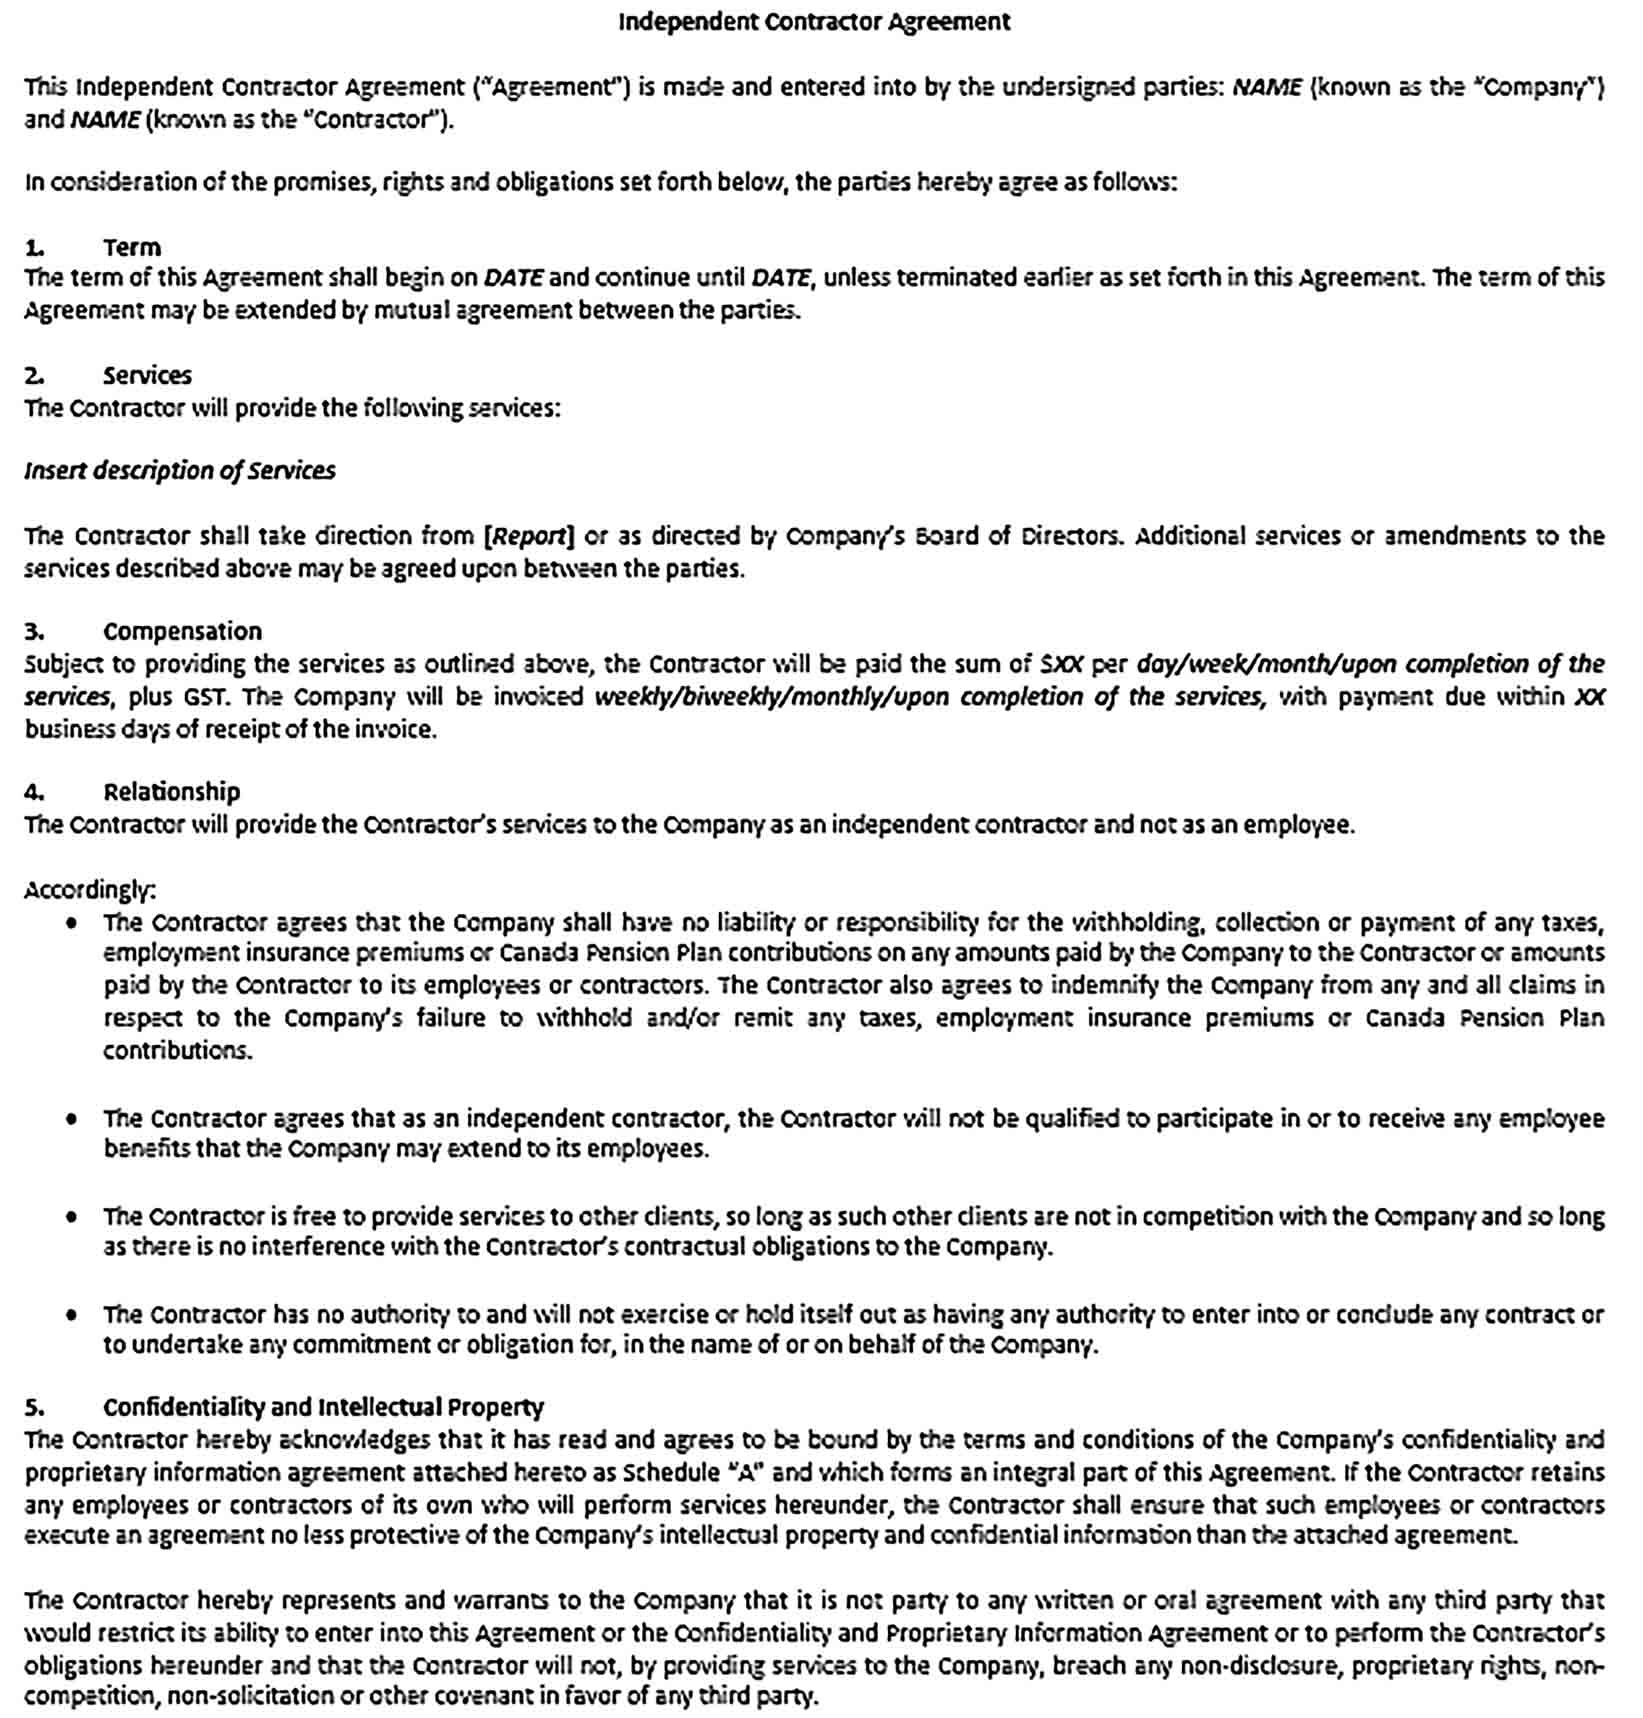 Sample Independent Contractor Agreement 002